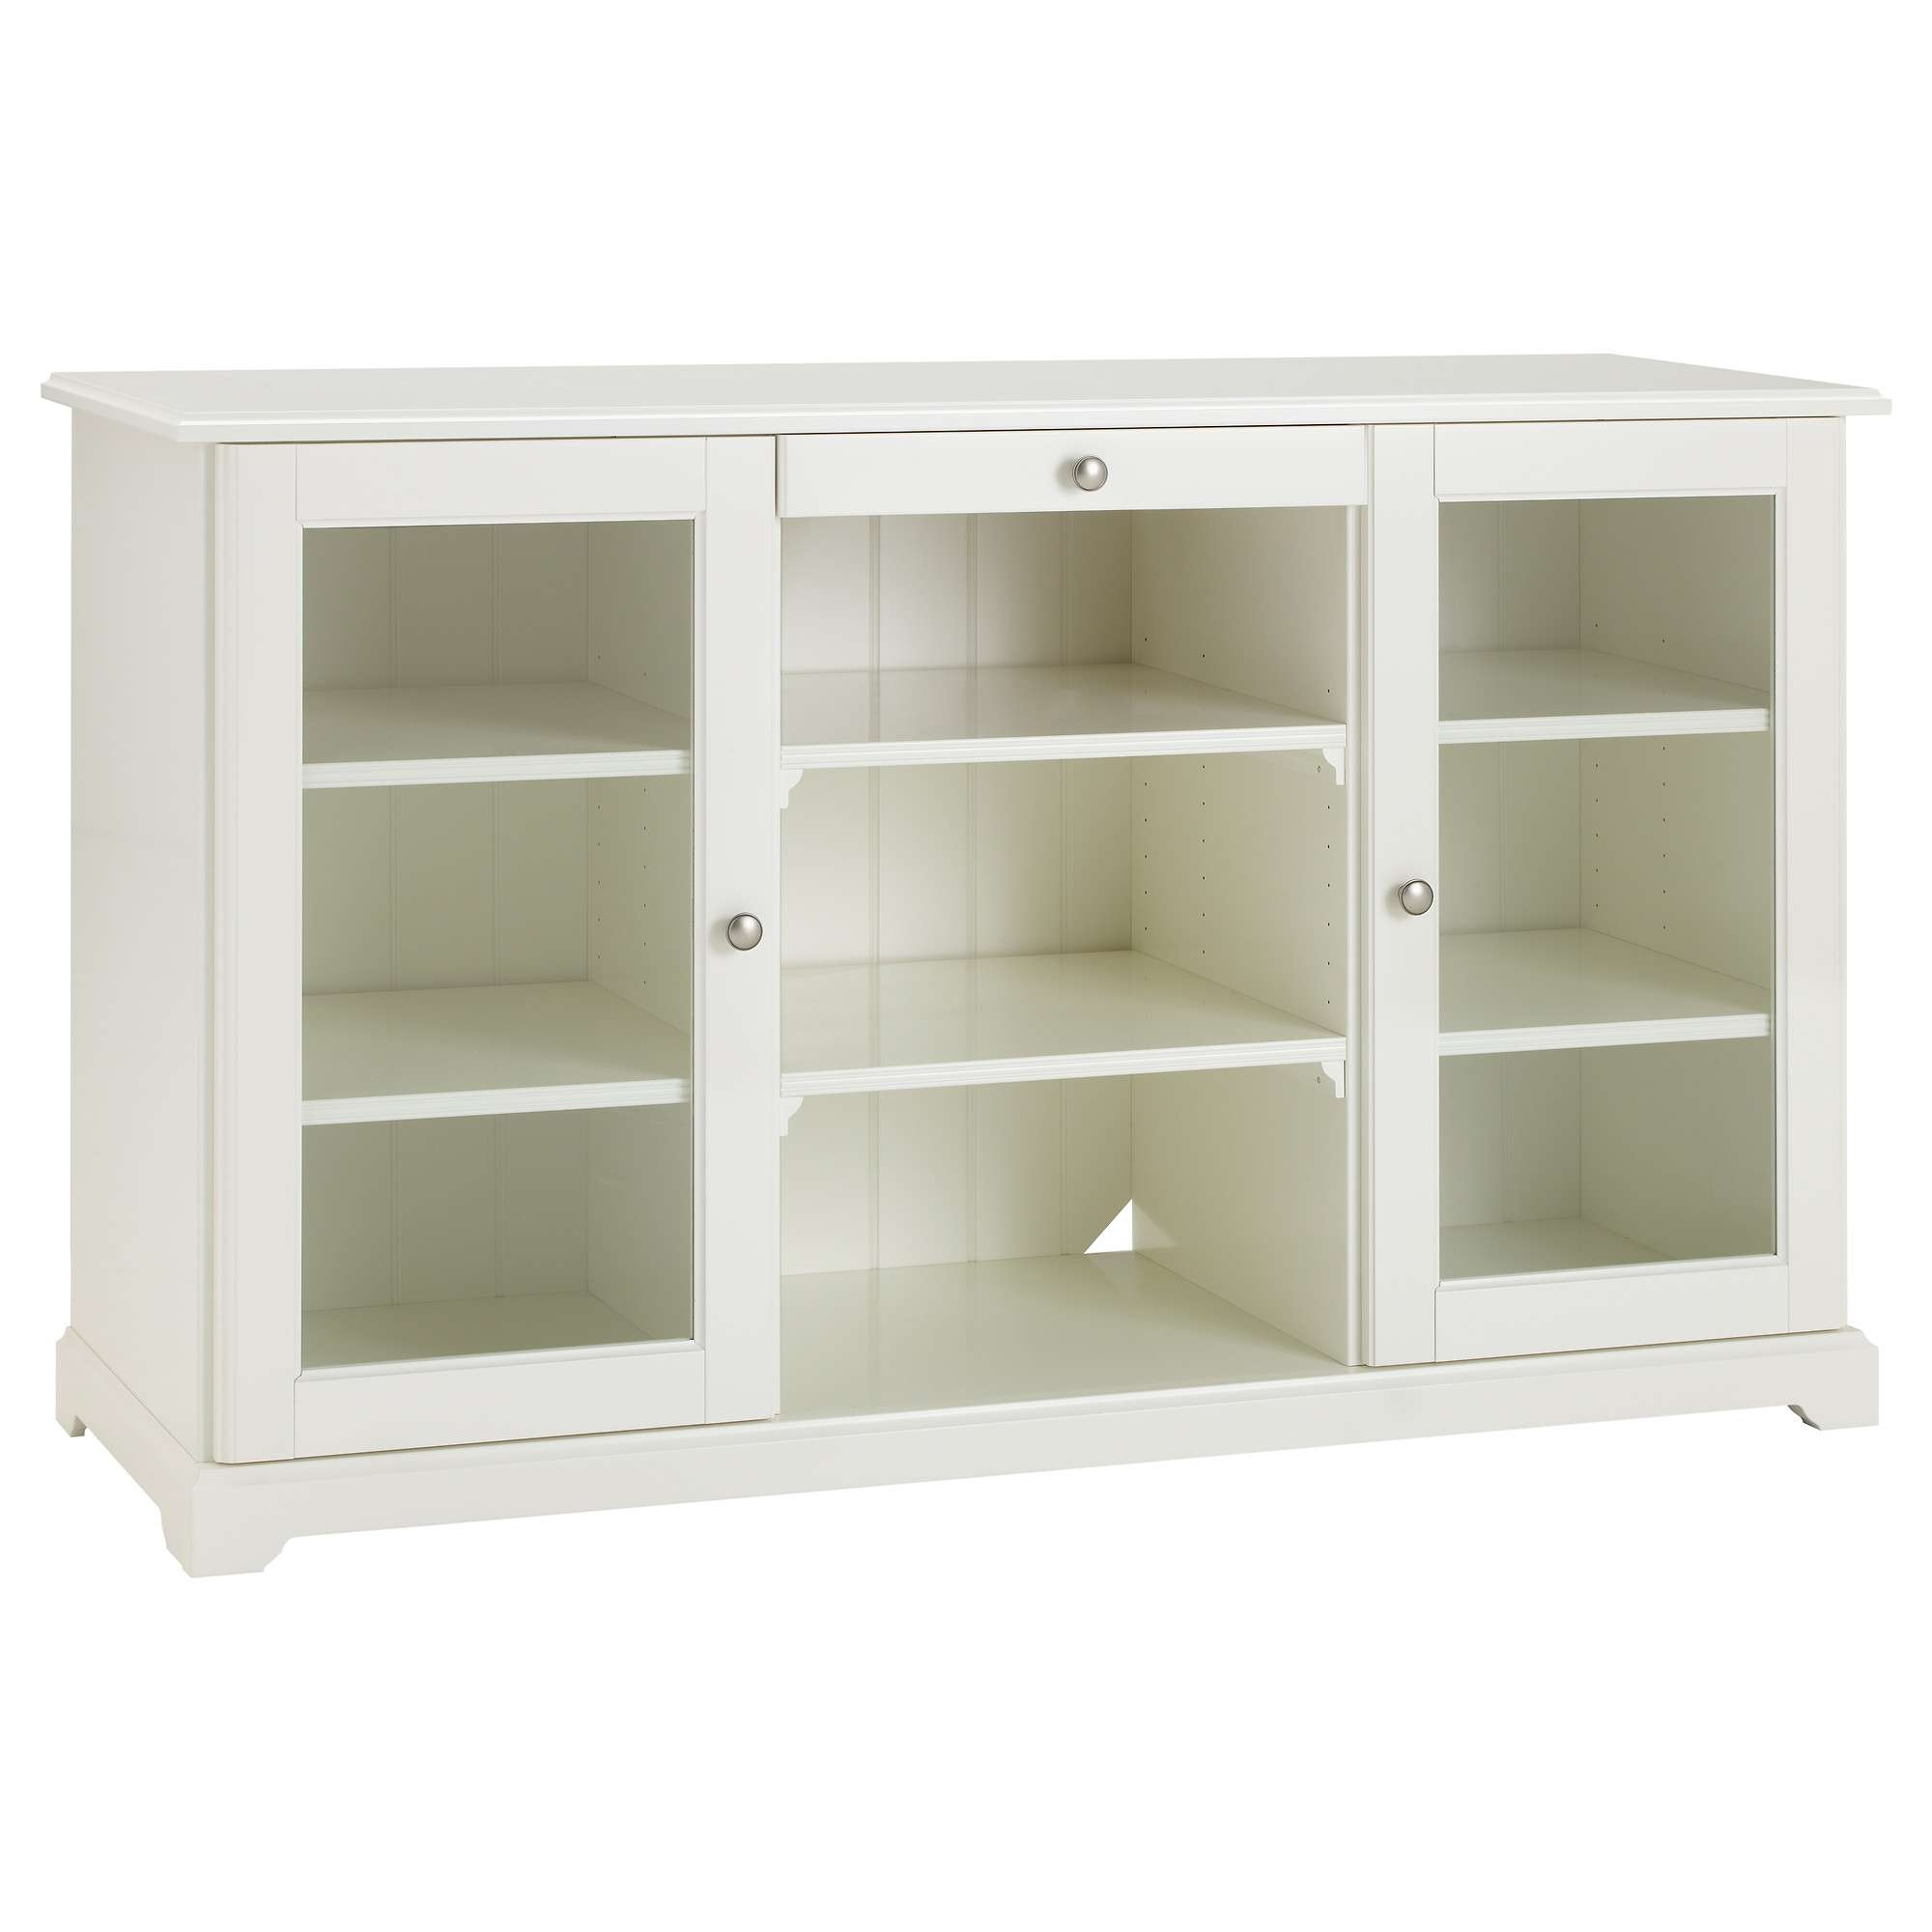 Liatorp Sideboard – White – Ikea In White Sideboards With Glass Doors (View 3 of 20)